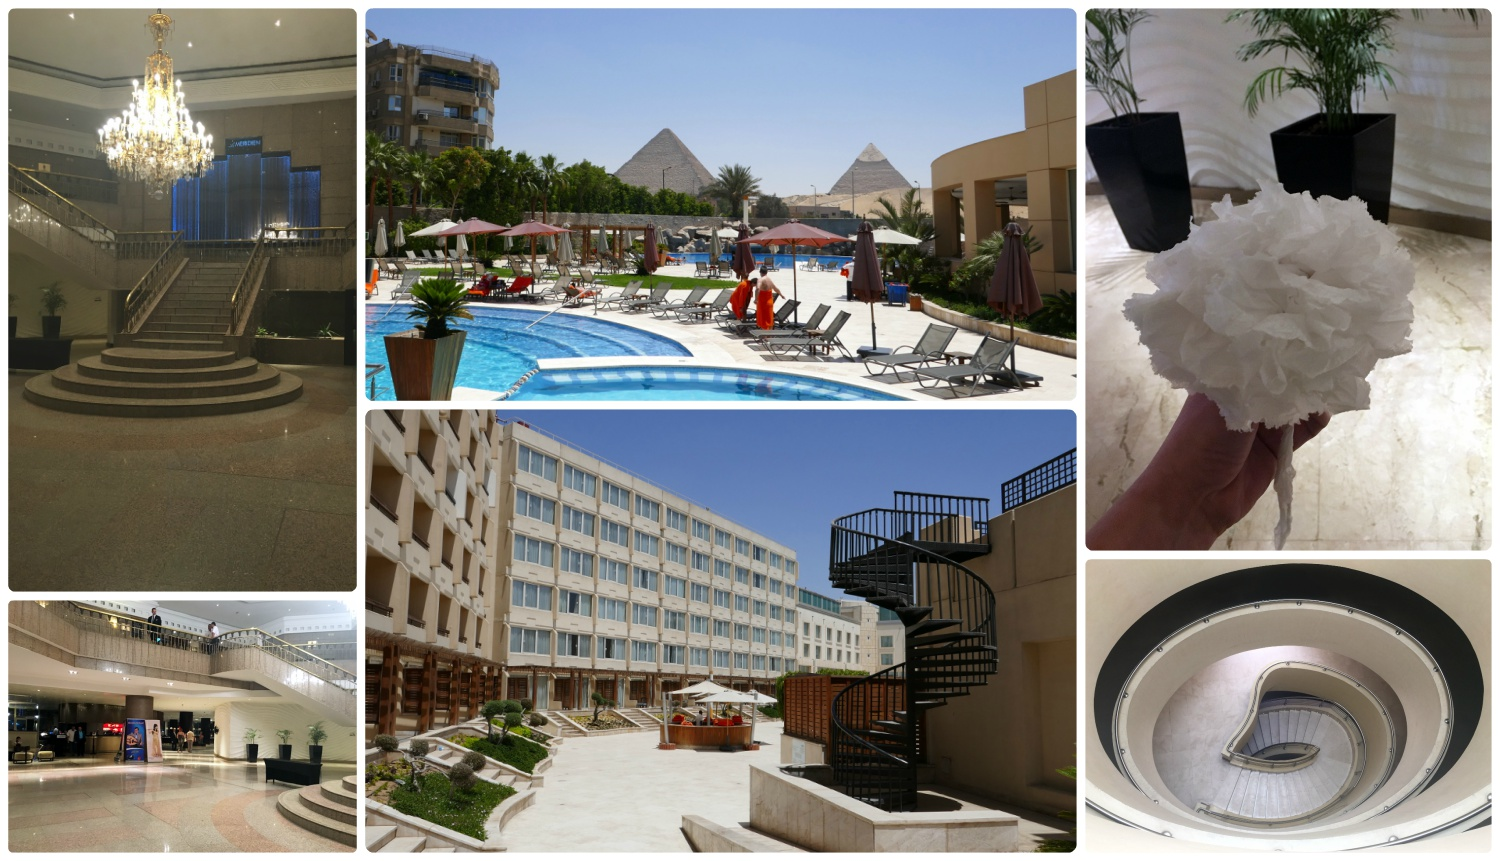 All images are of the  Le Méridien Pyramids Hotel & Spa . Clockwise (from the top): The lobby of the hotel, view of the pyramids from the pools, a flower made out of napkins - given to Shannon by a waiter, the stairwell from the fourth floor rooms down to the ground floor and the spa, the walkway to the pool area that we used to get to our room, the lobby.